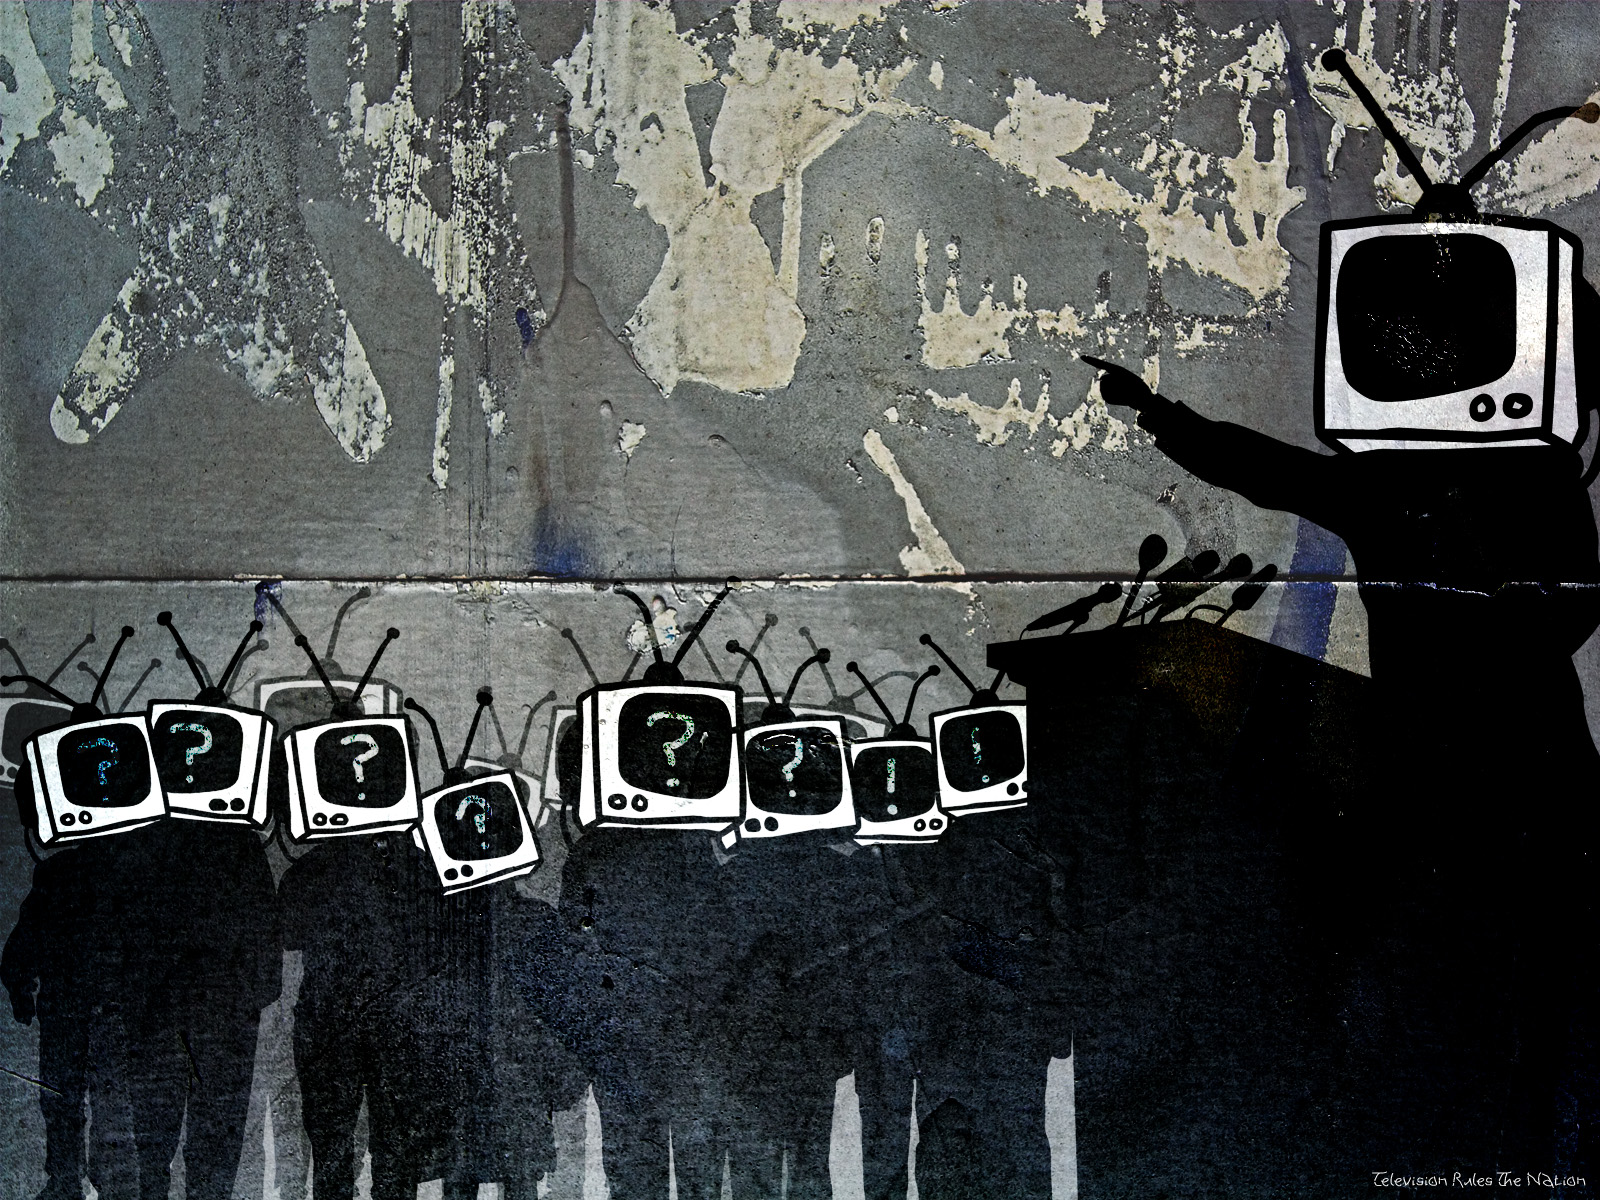 Street Art Television Rules The Nation - Street Art Television Rules The Nation